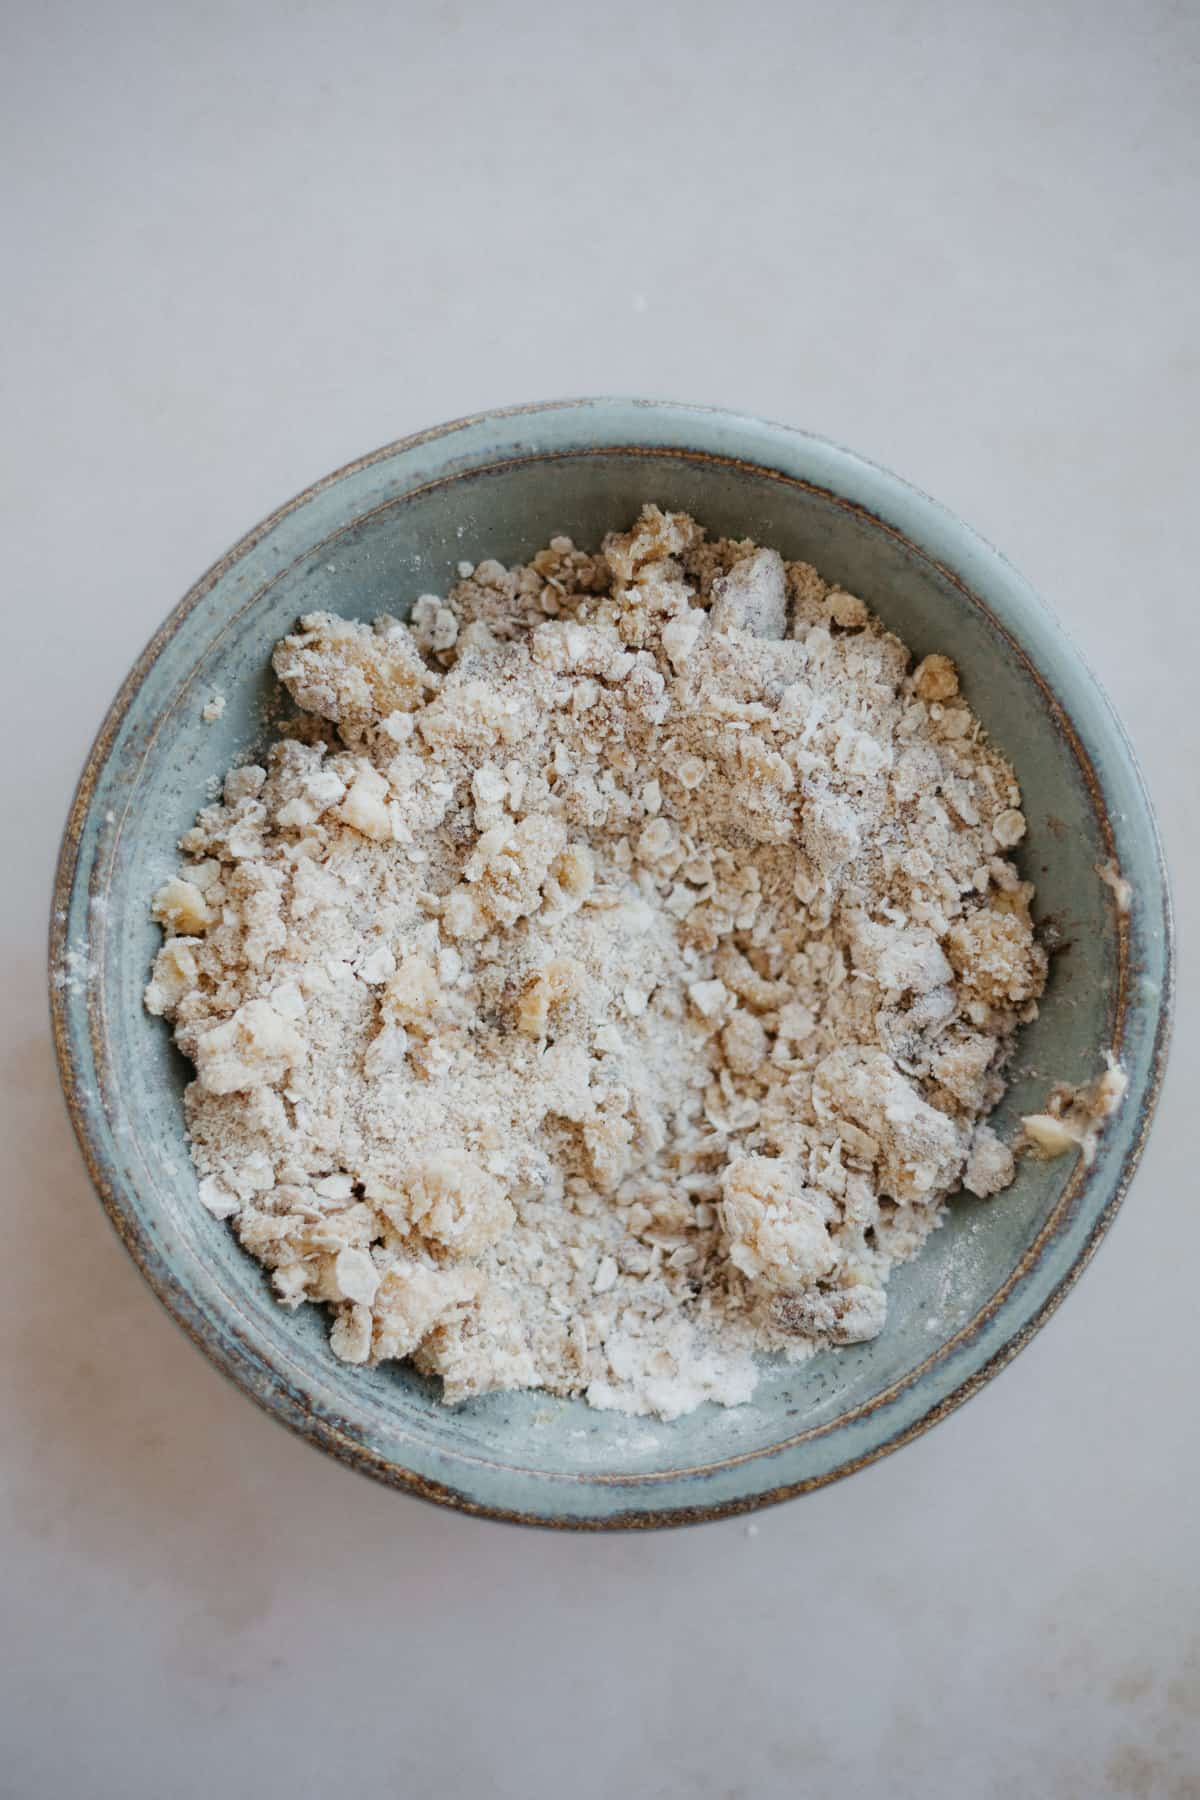 a small ceramic bowl with an oat crumble topping